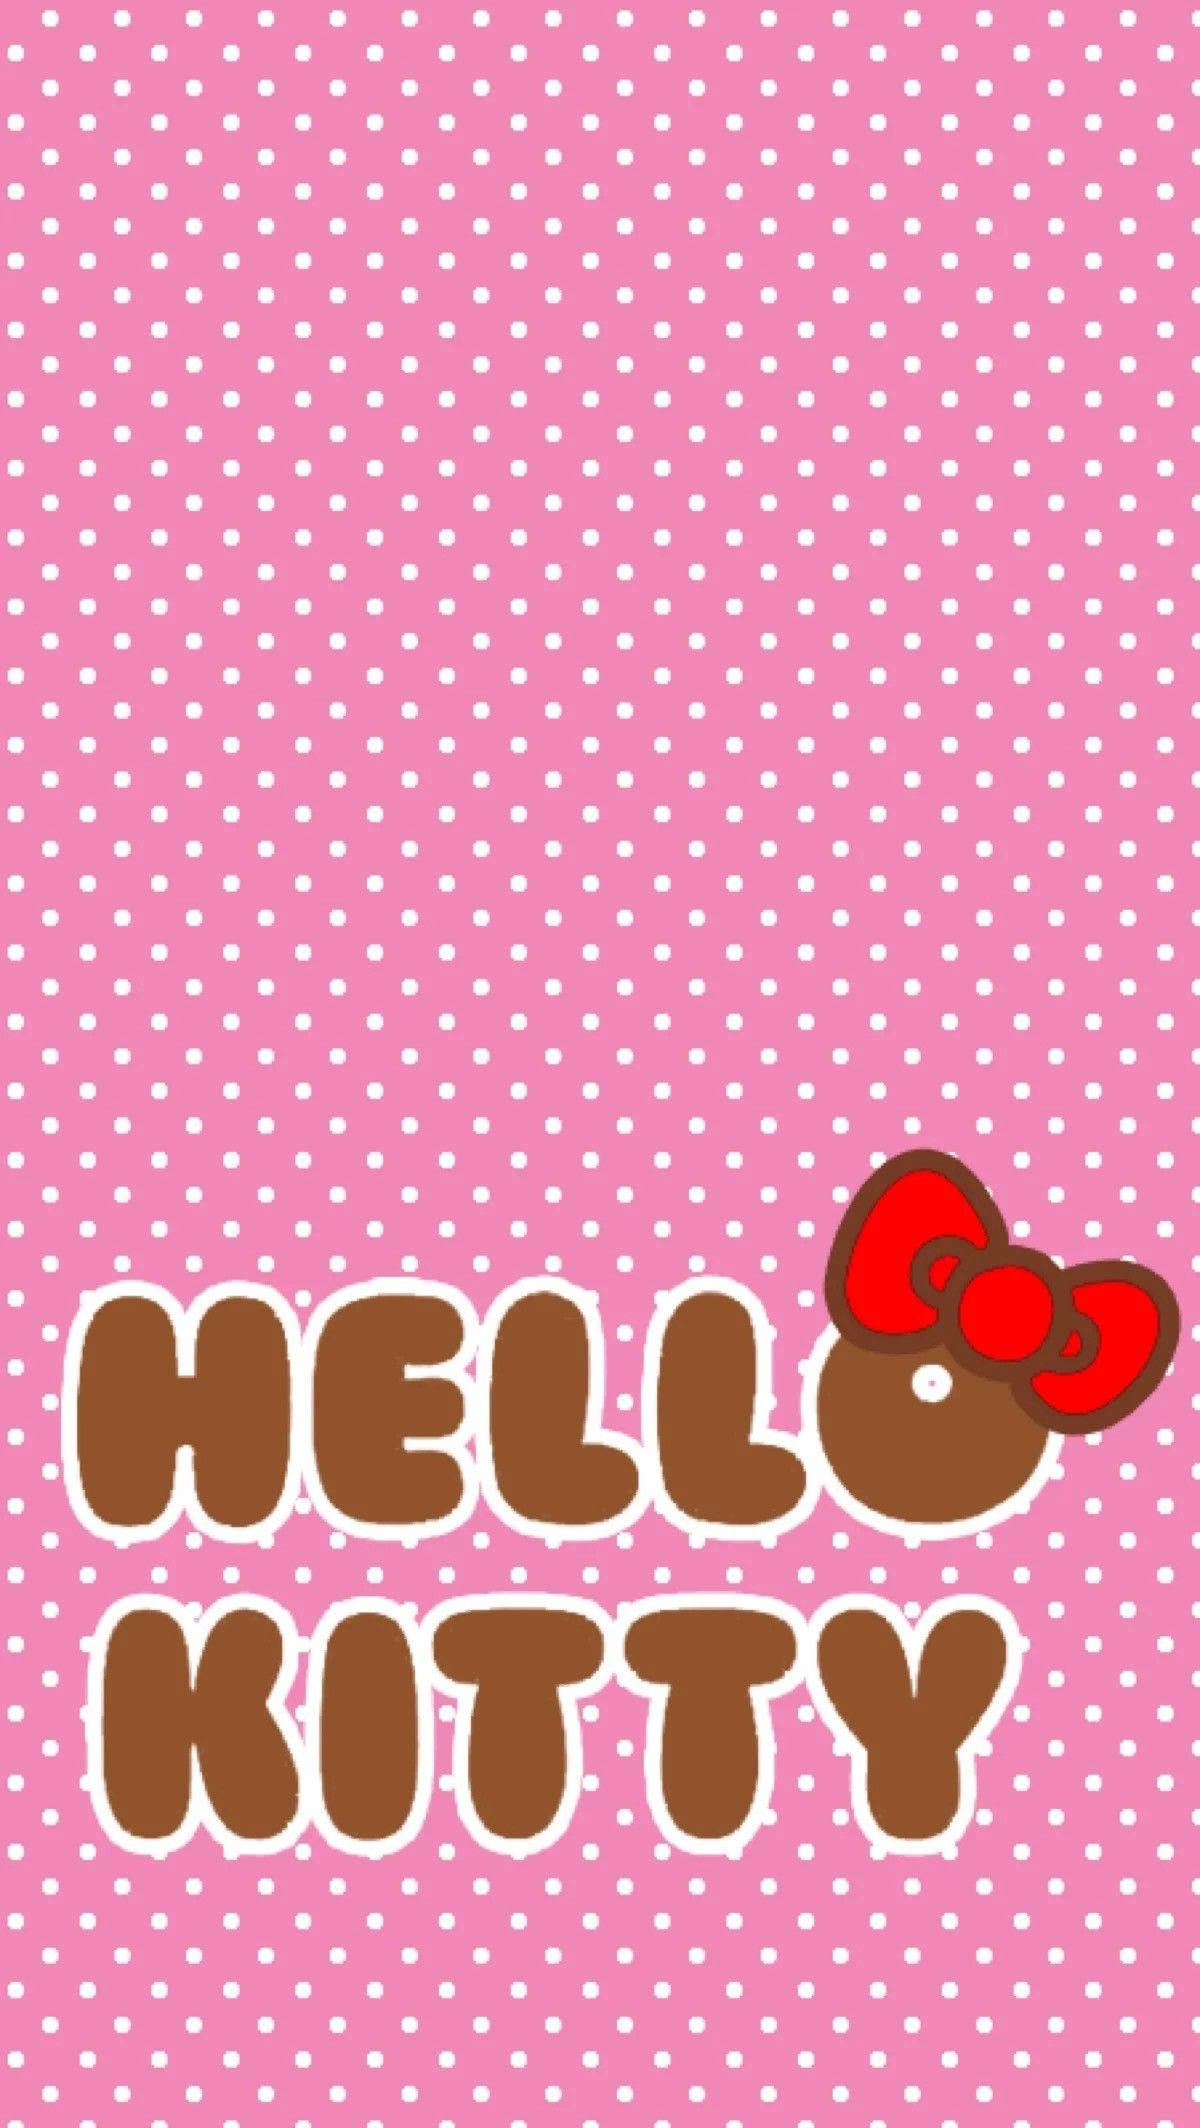 Cute Hello Kitty Wallpapers Top Free Cute Hello Kitty